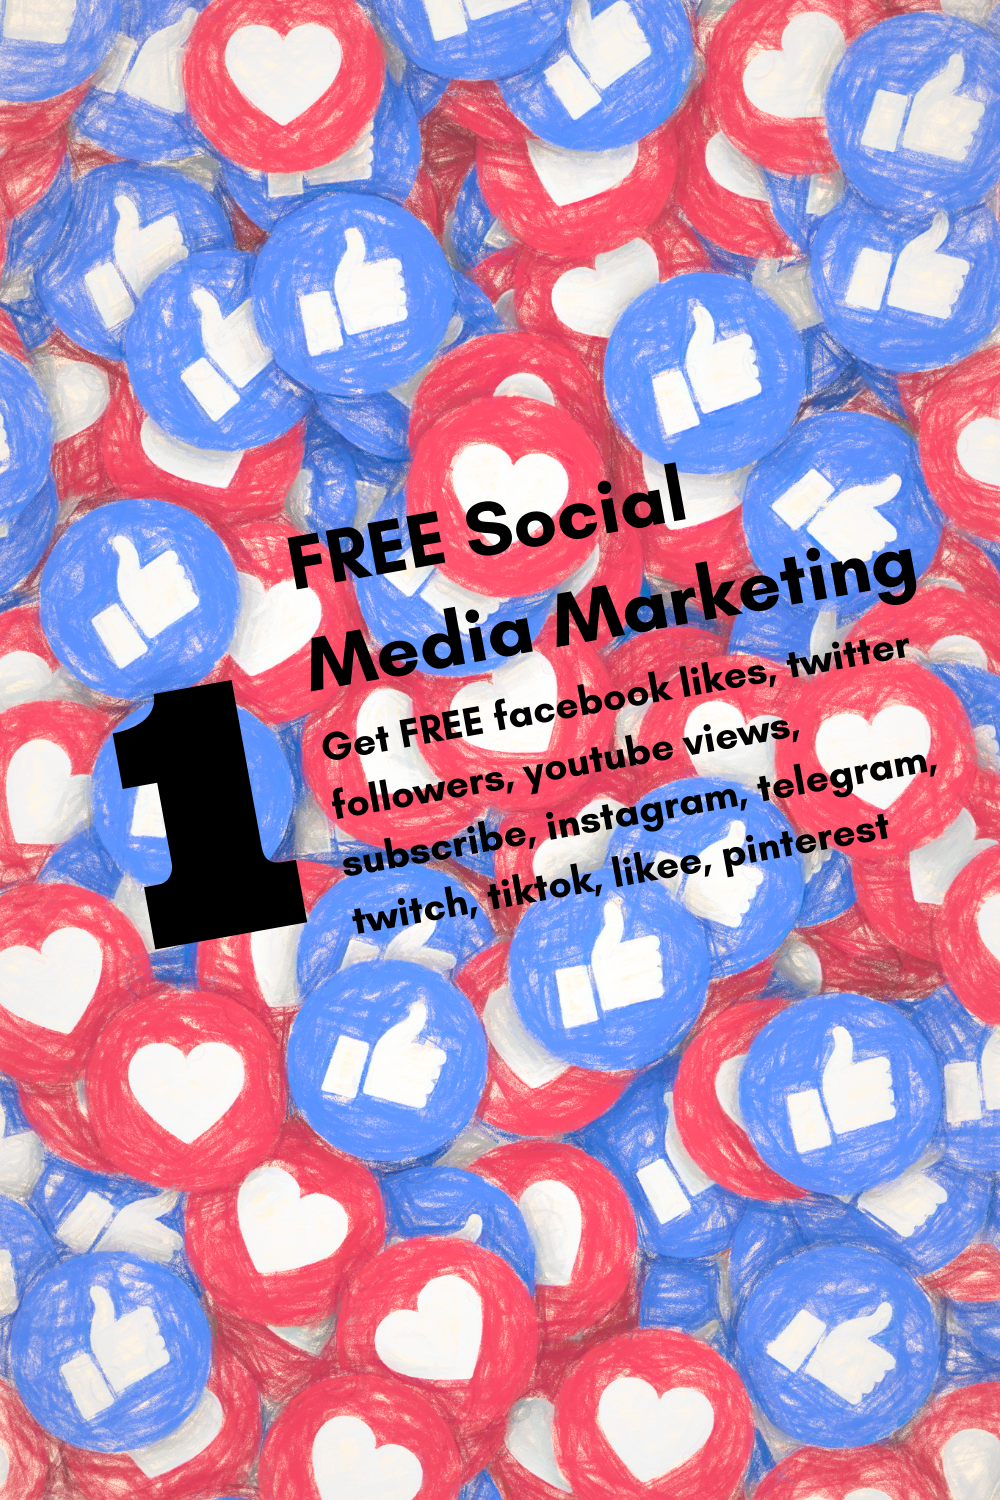 100 Free Social Media Marketing Get Free Likes Followers Views Subscribe In 2020 Free Facebook Likes Free Social Media Marketing Get Gift Cards